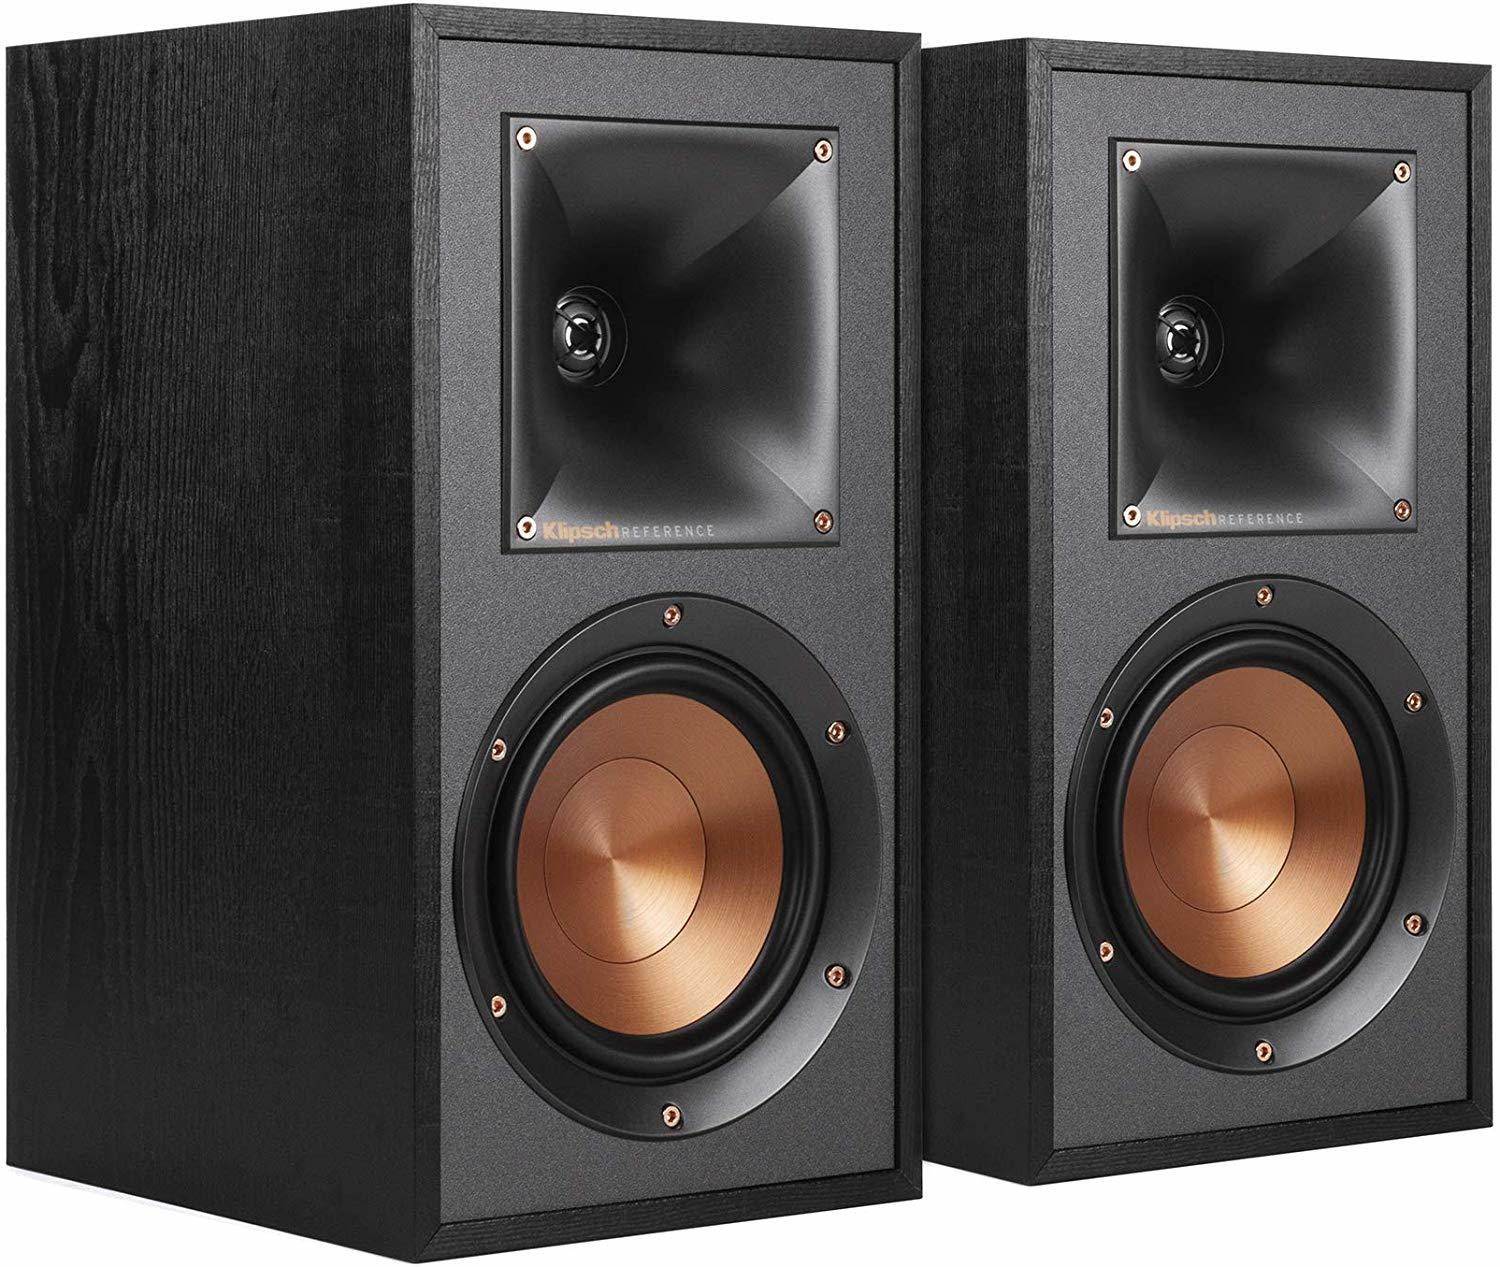 Klipsch Reference Series Bookshelf Speakers in Malaysia.jpg